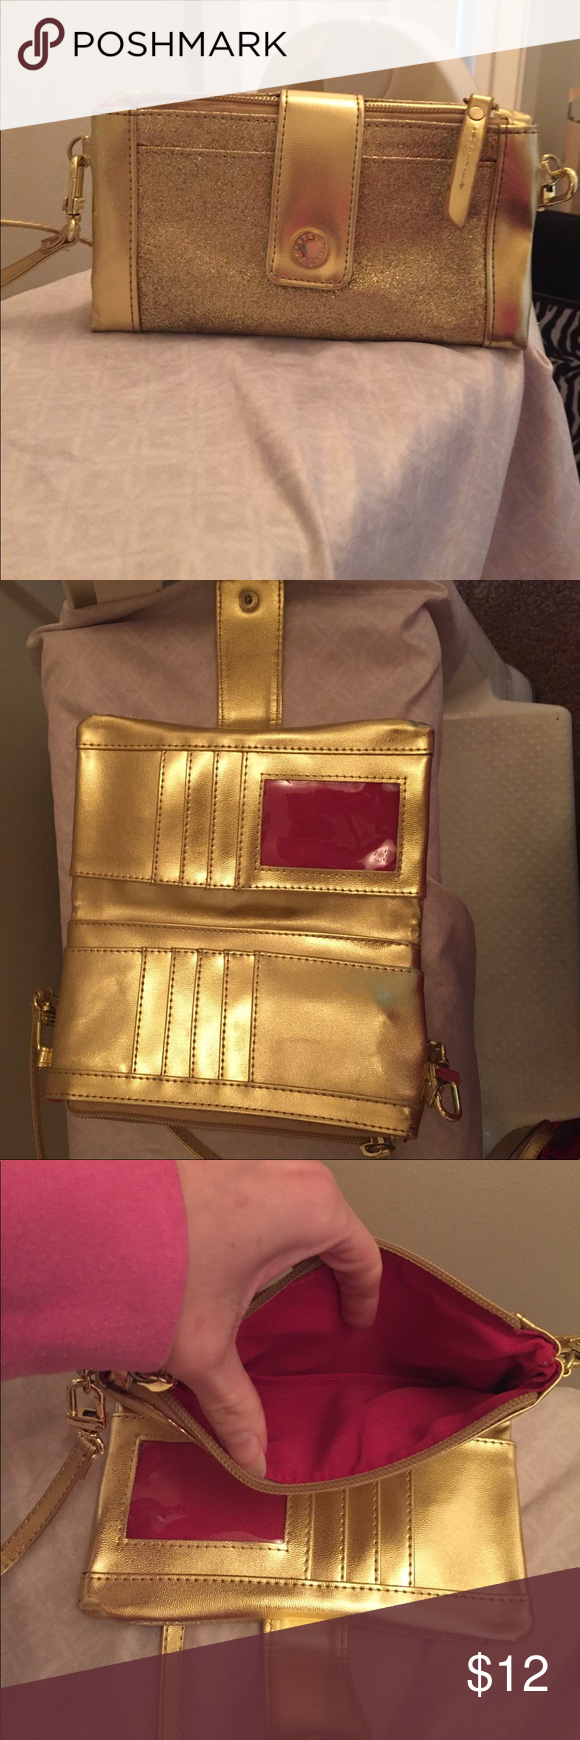 Steve Madden gold clutch wallet cross body Steve Madden gold wallet crossbody. Has lots of slots and a clear slot for ID. Zipper compartment perfect for cell phone. Pretty shiny gold and great for nights out. Steve Madden Bags Crossbody Bags